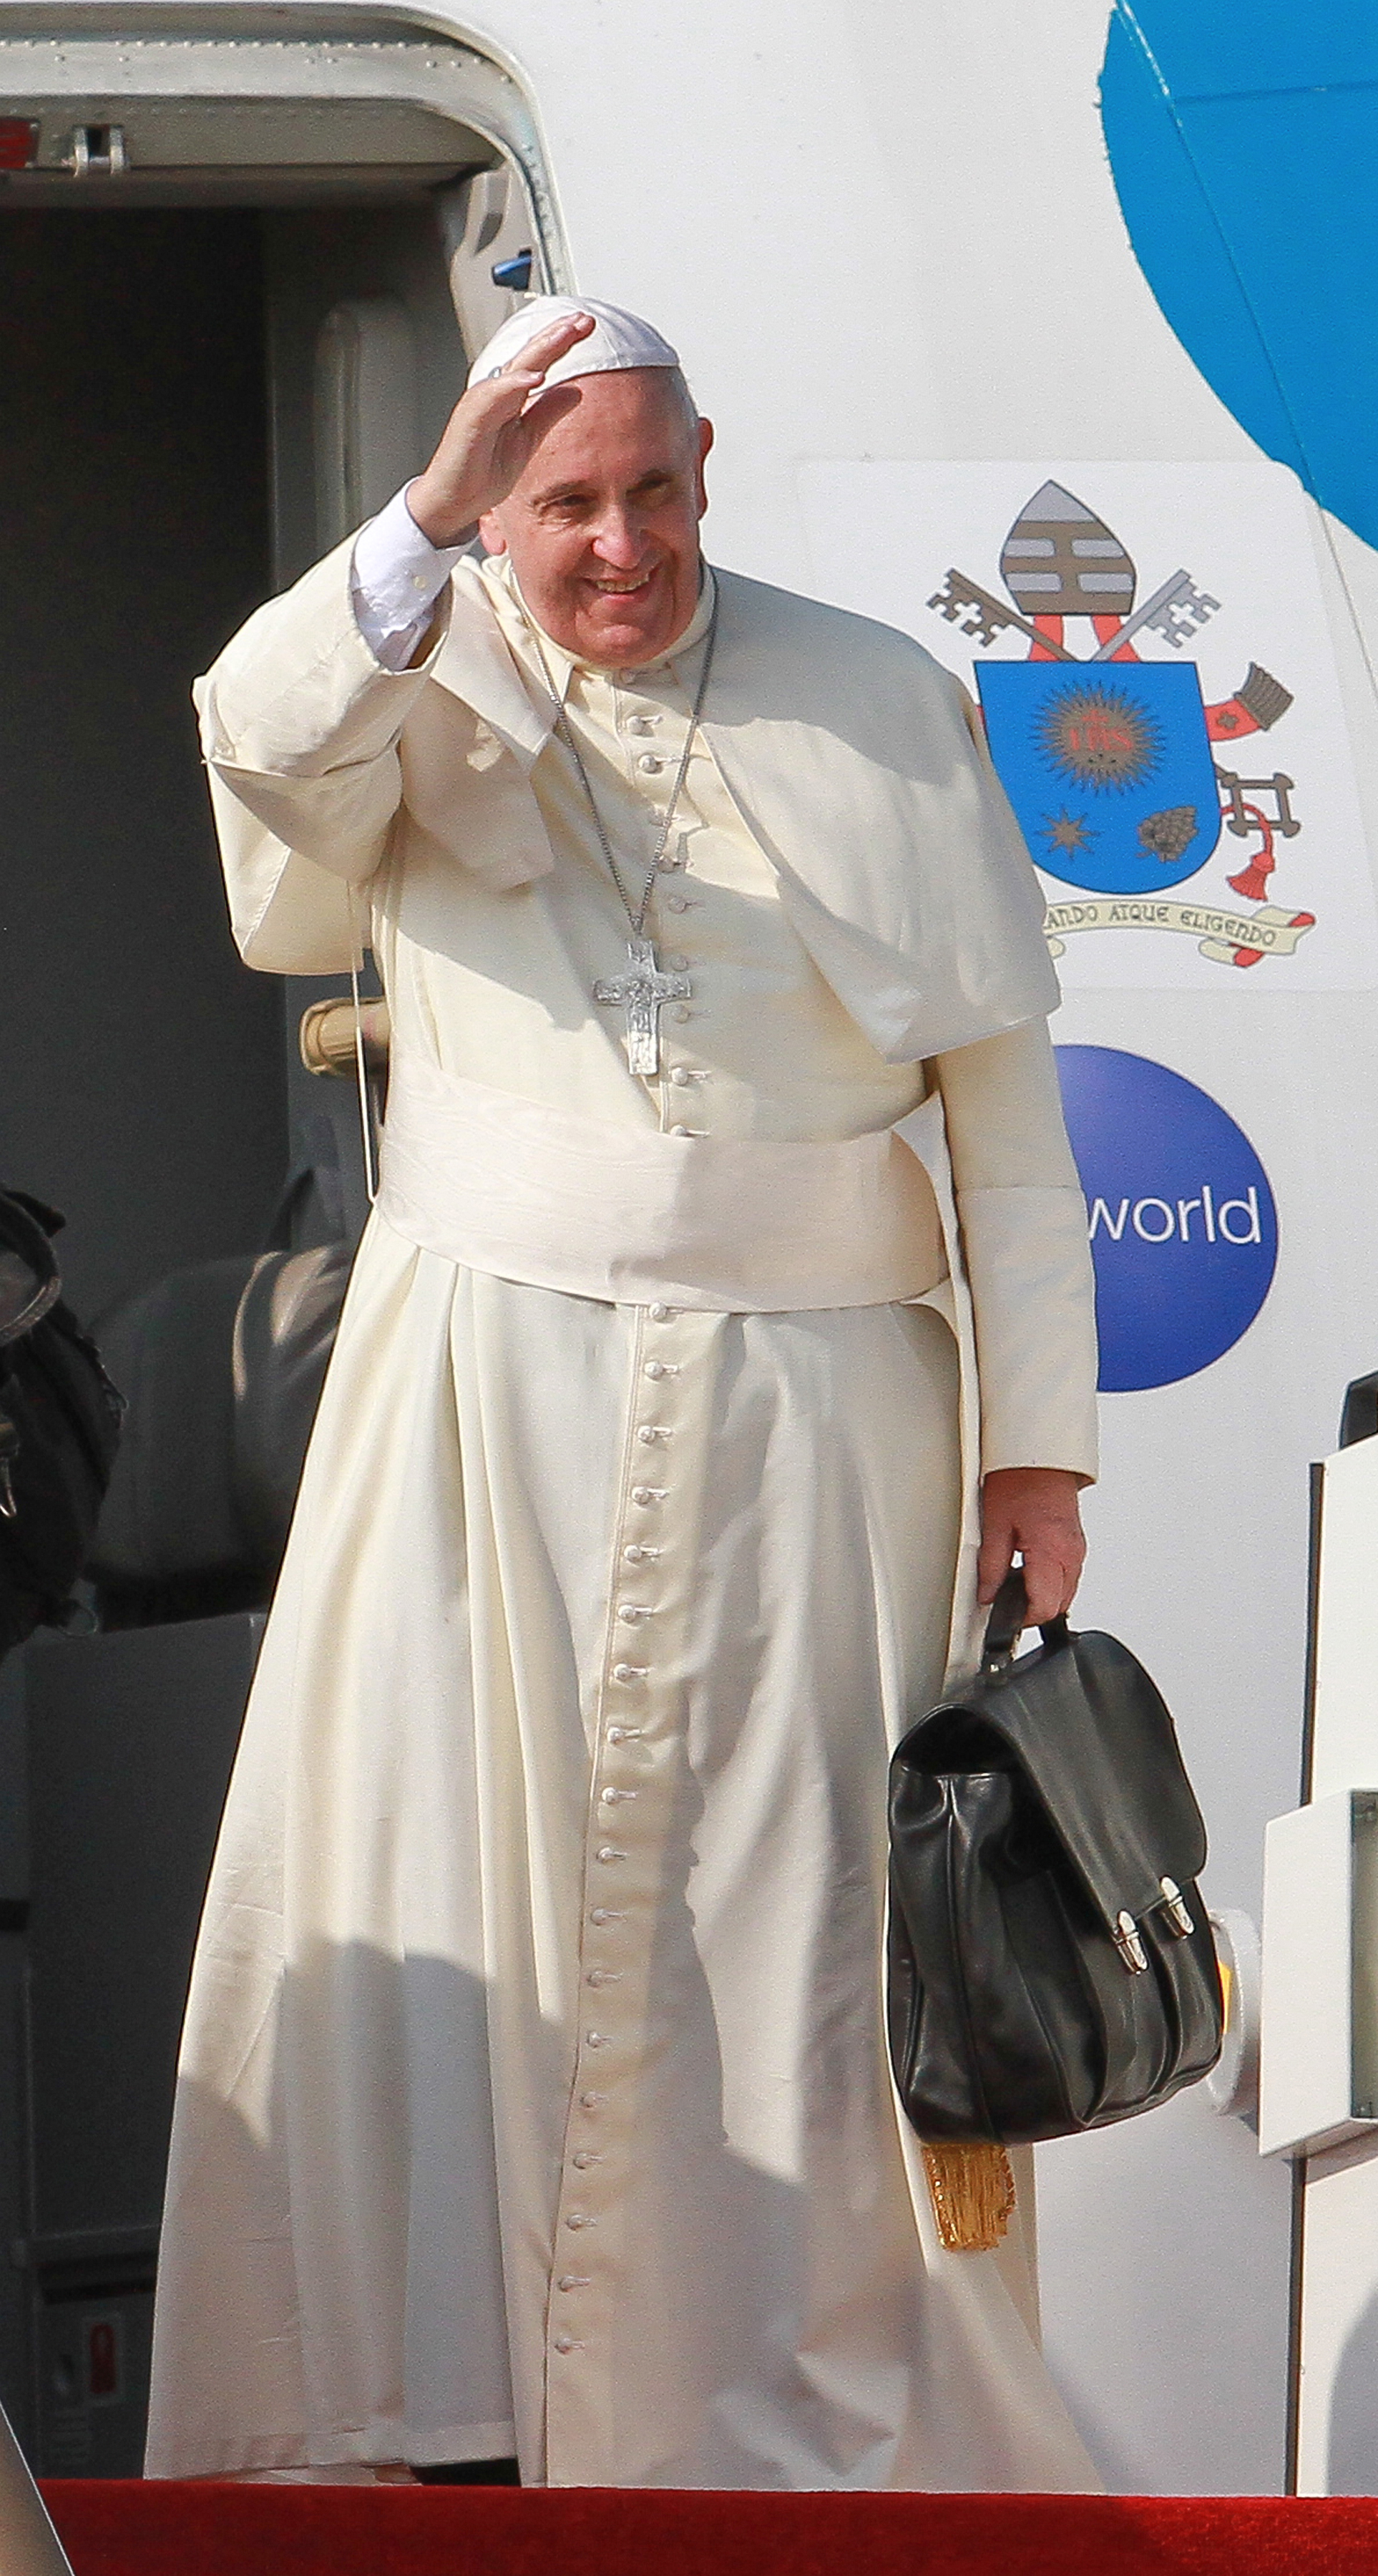 Pope Francis waves during the departure ceremony at the Bandaranaike International Airport  in Colombo, Sri Lank on Jan. 15, 2015.